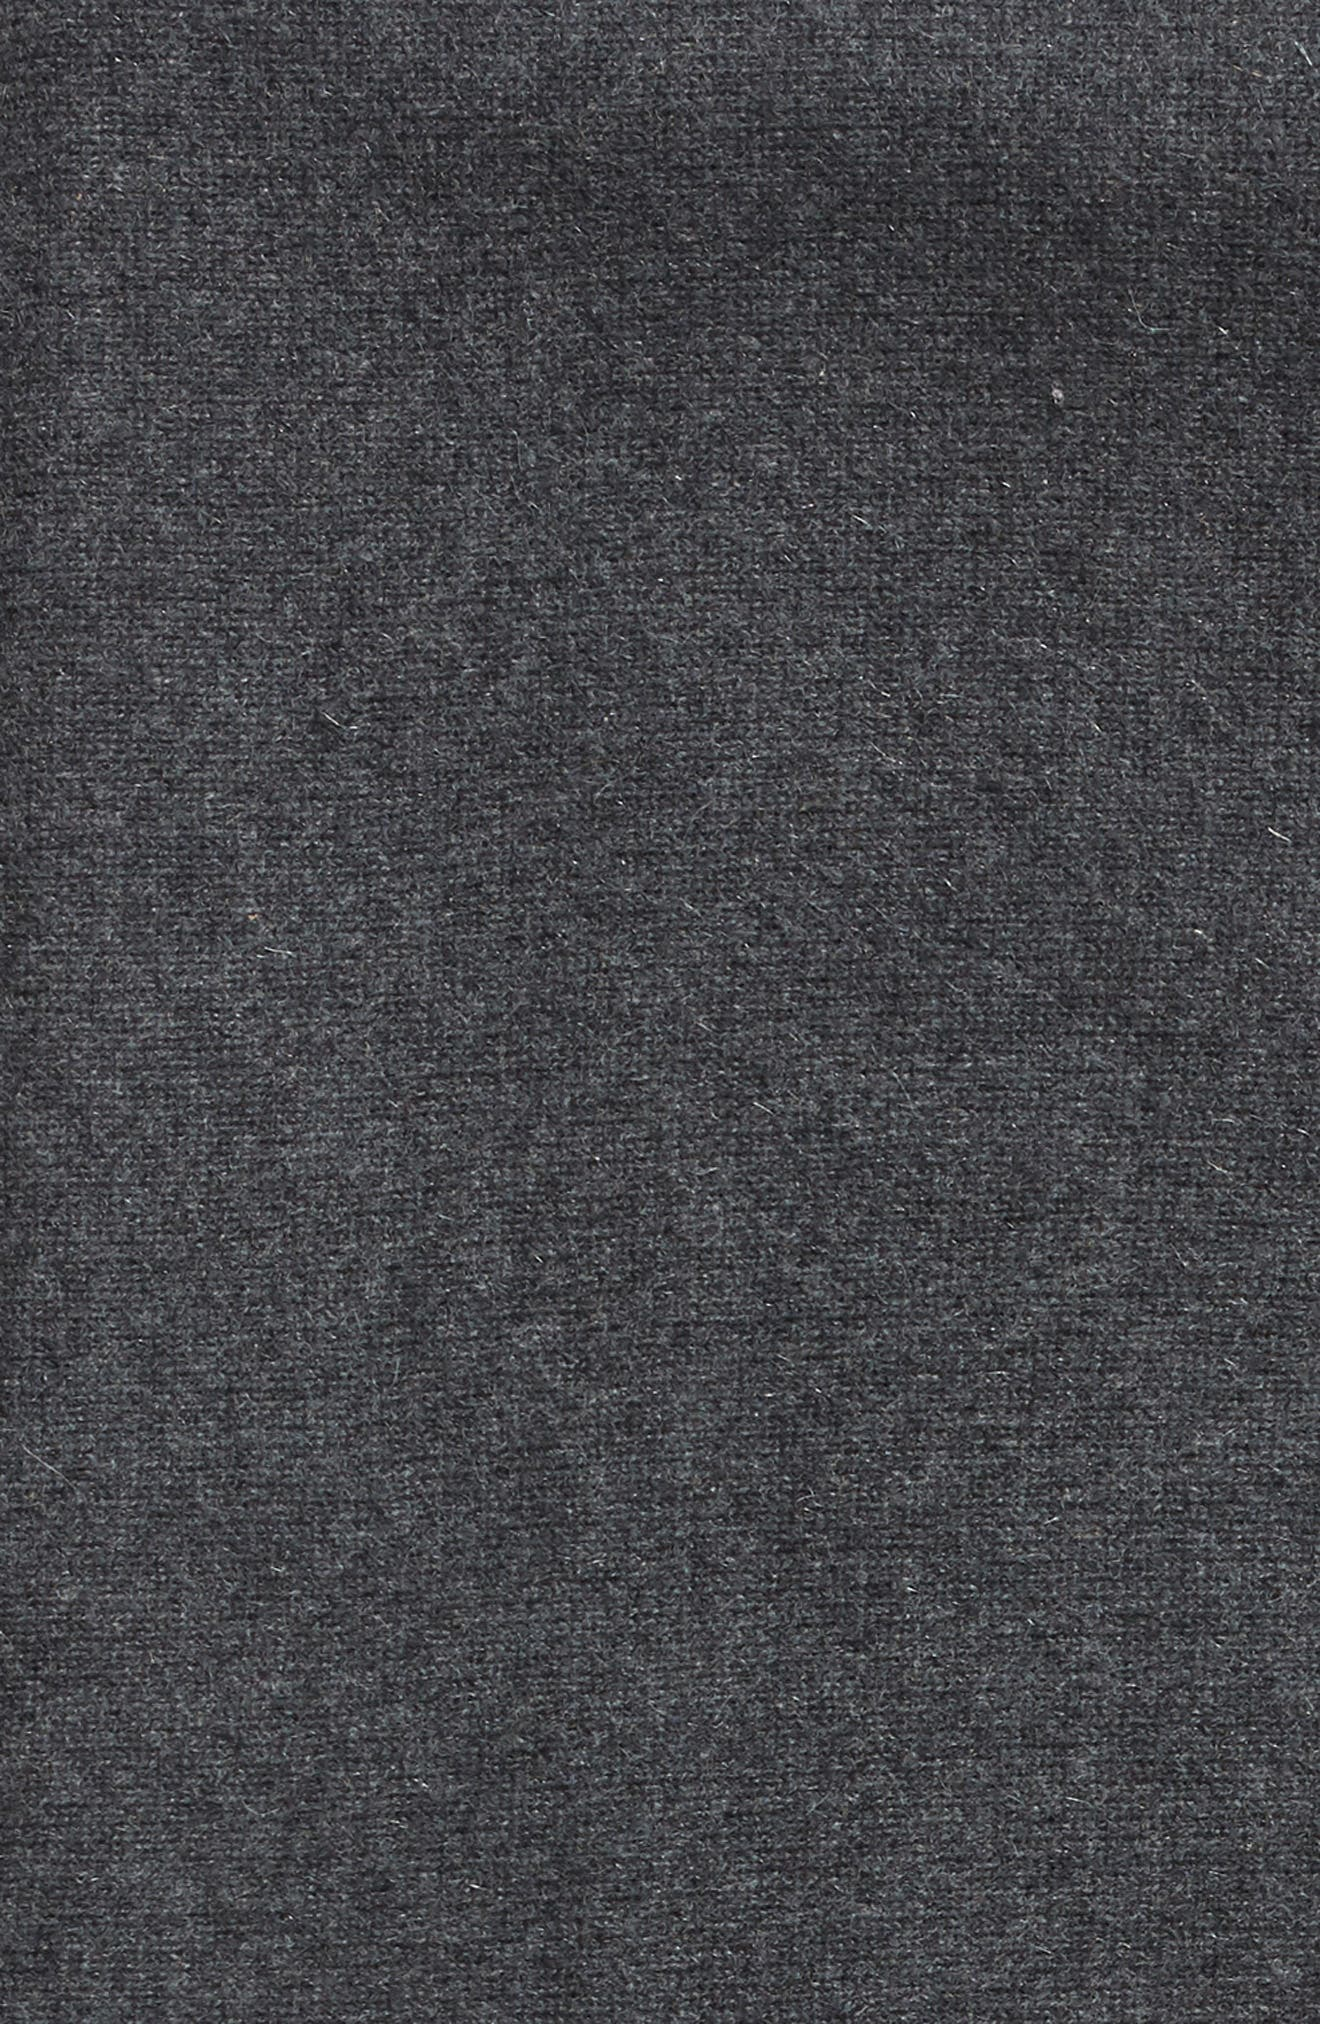 Double Knit Cashmere Throw,                             Alternate thumbnail 2, color,                             GREY CLAY HEATHER